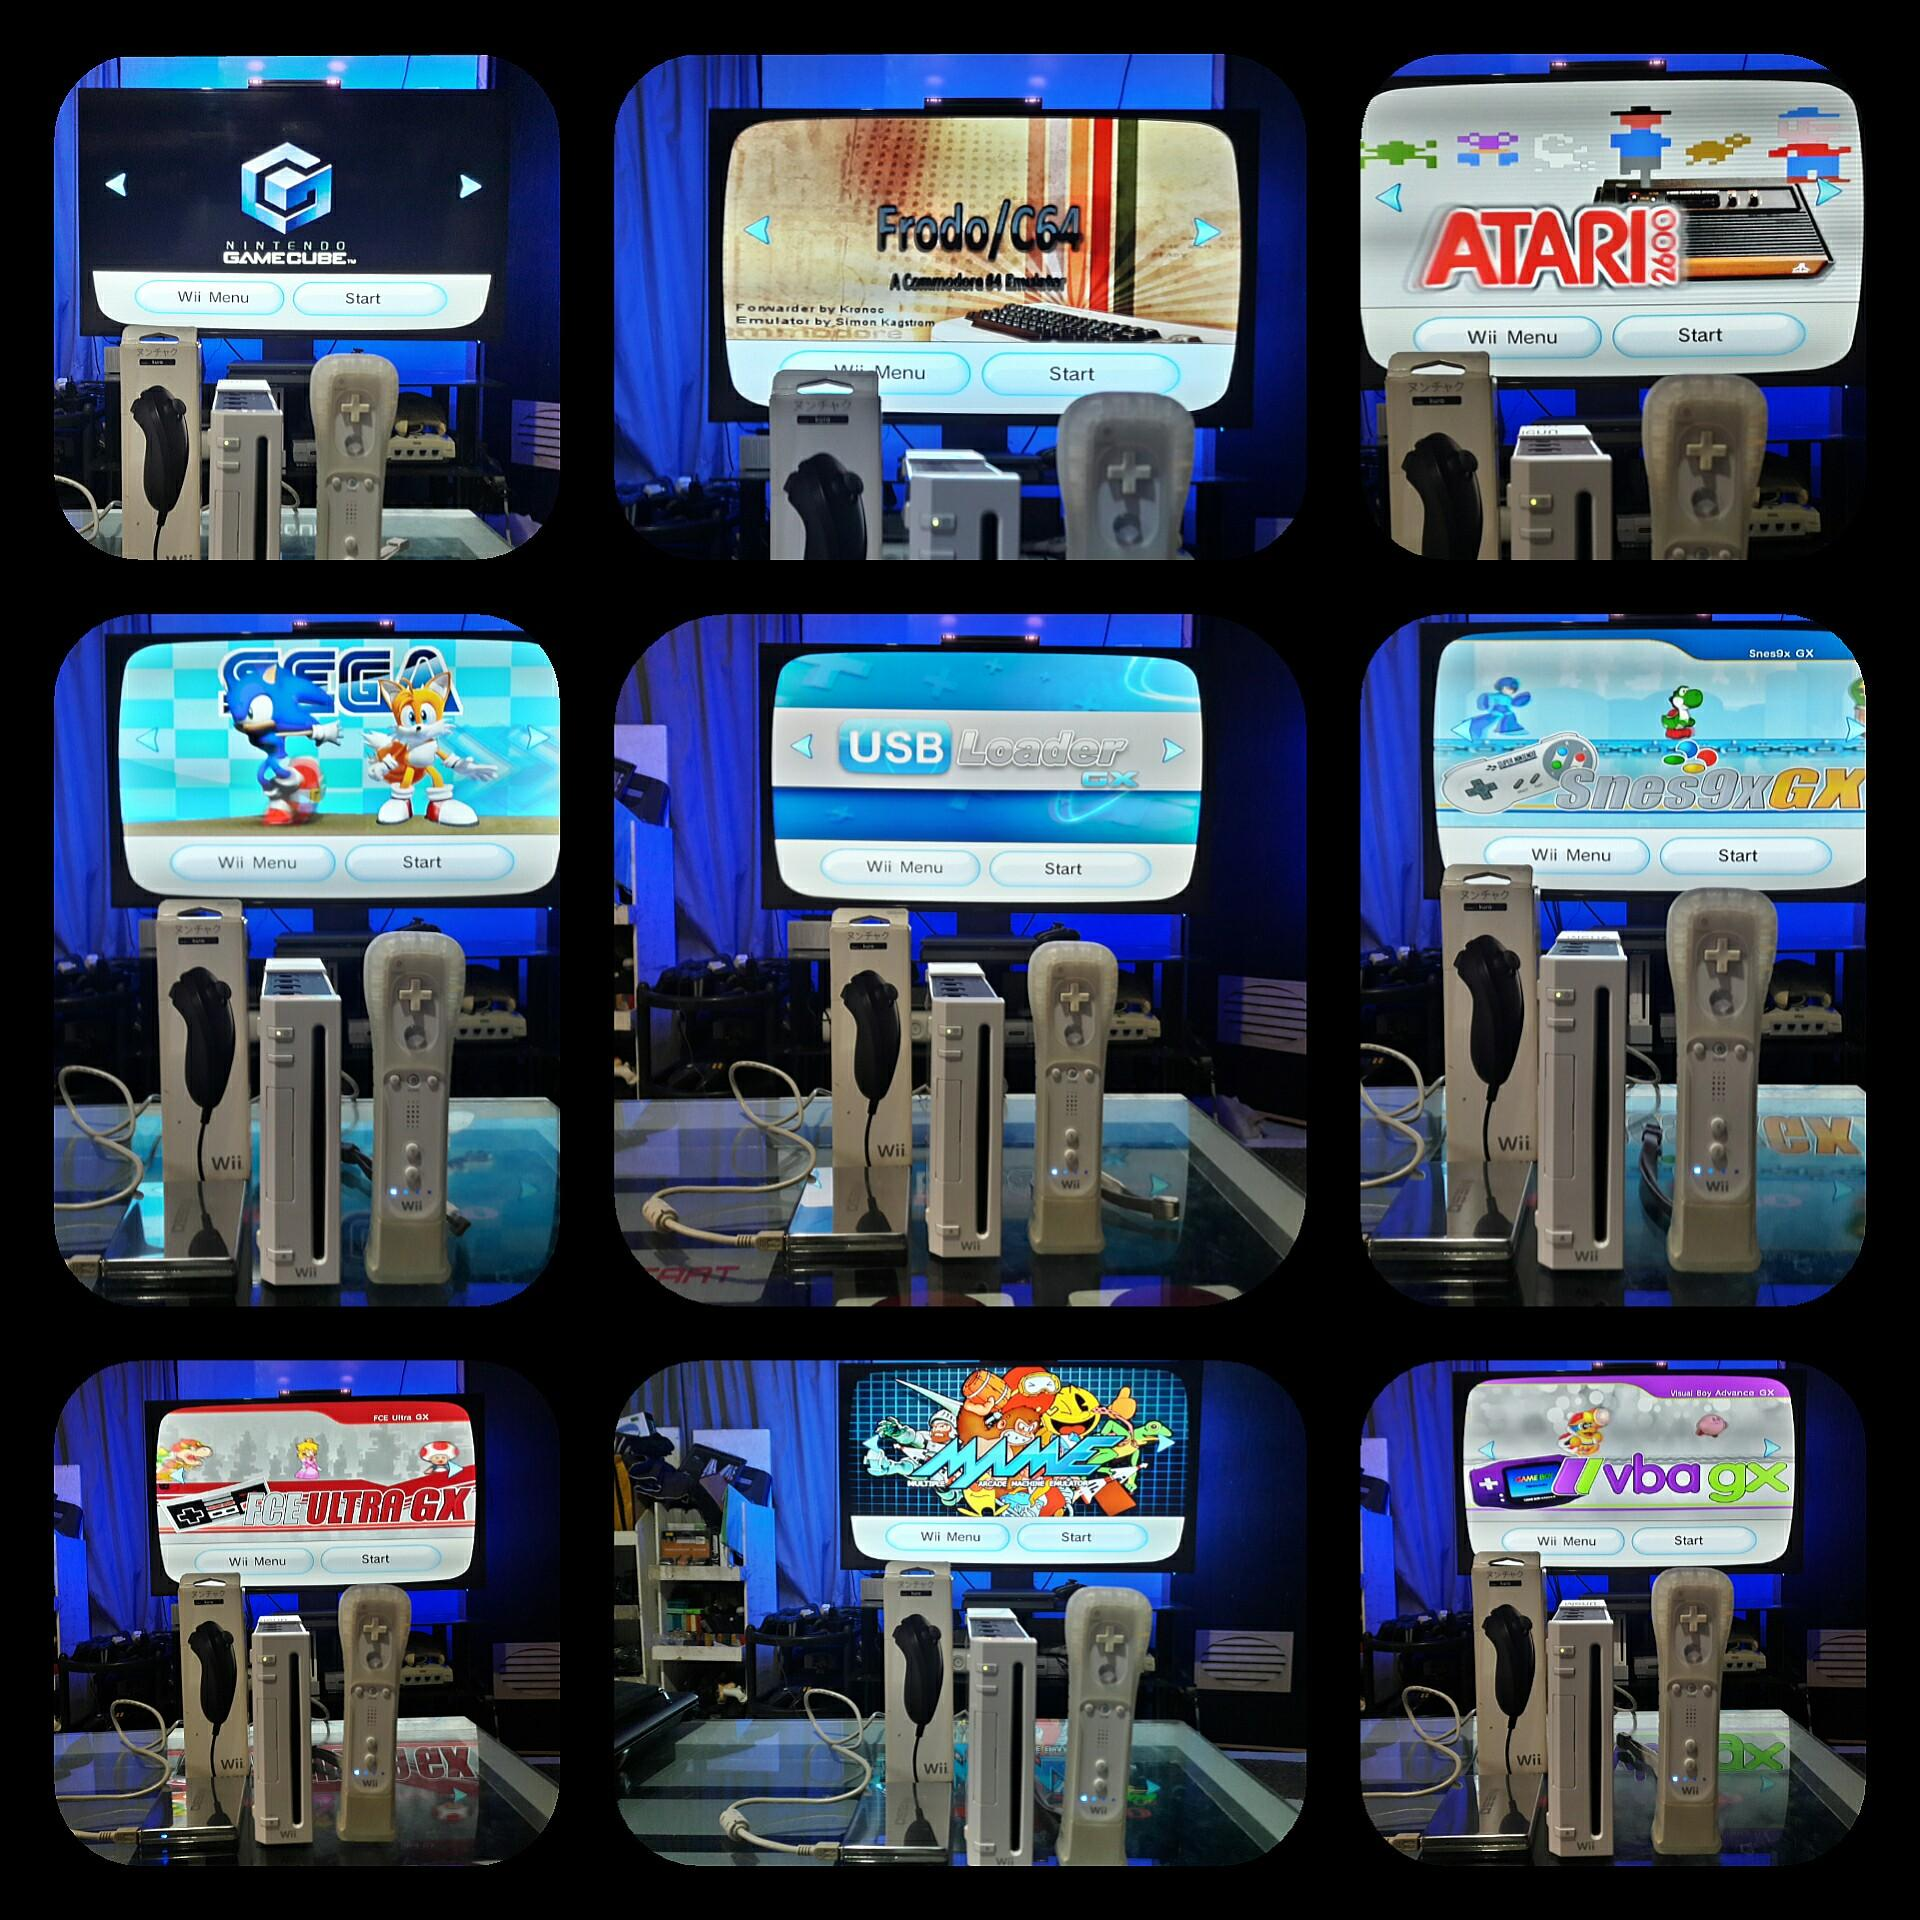 Wii modify play Games via usb or hdd, Video Gaming, Video